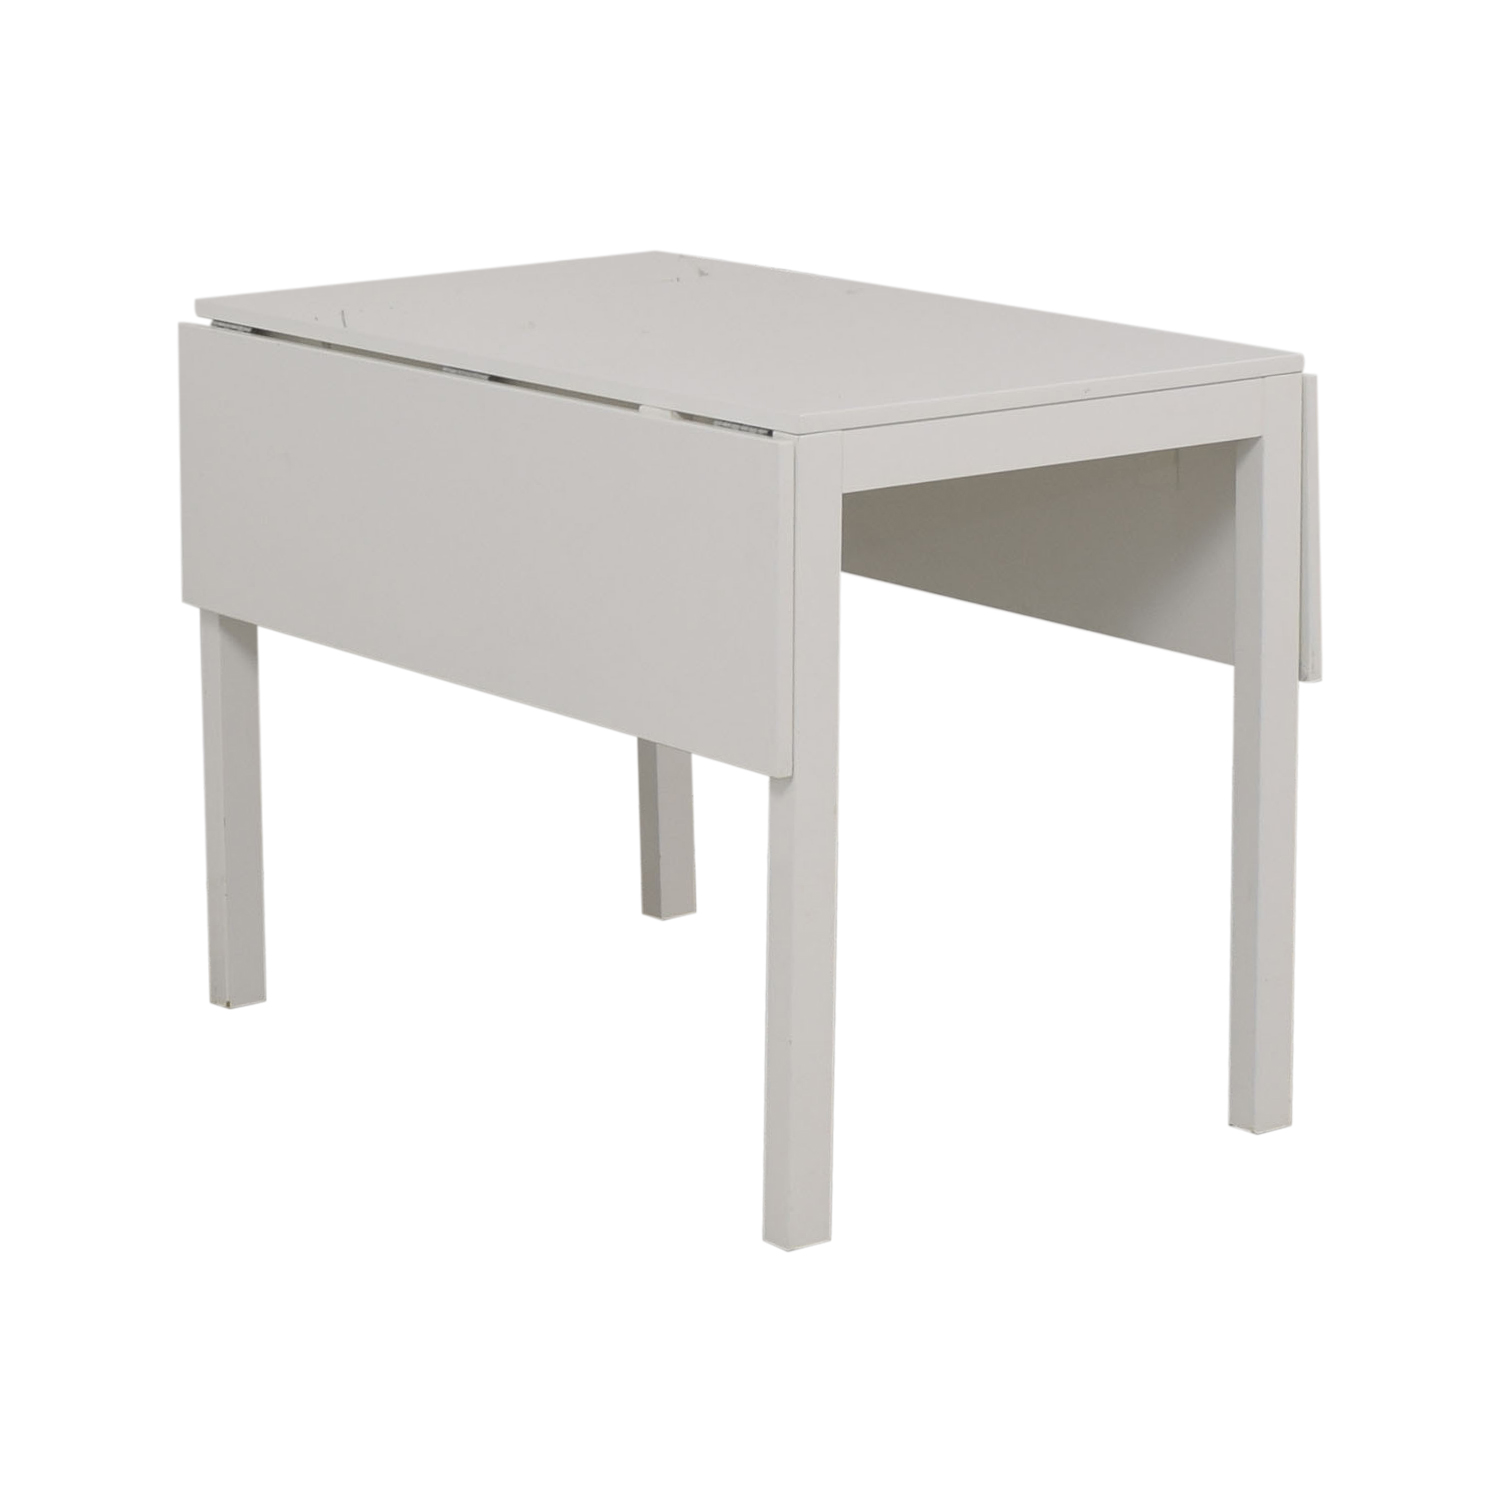 CB2 CB2 Drop Leaf Table for sale